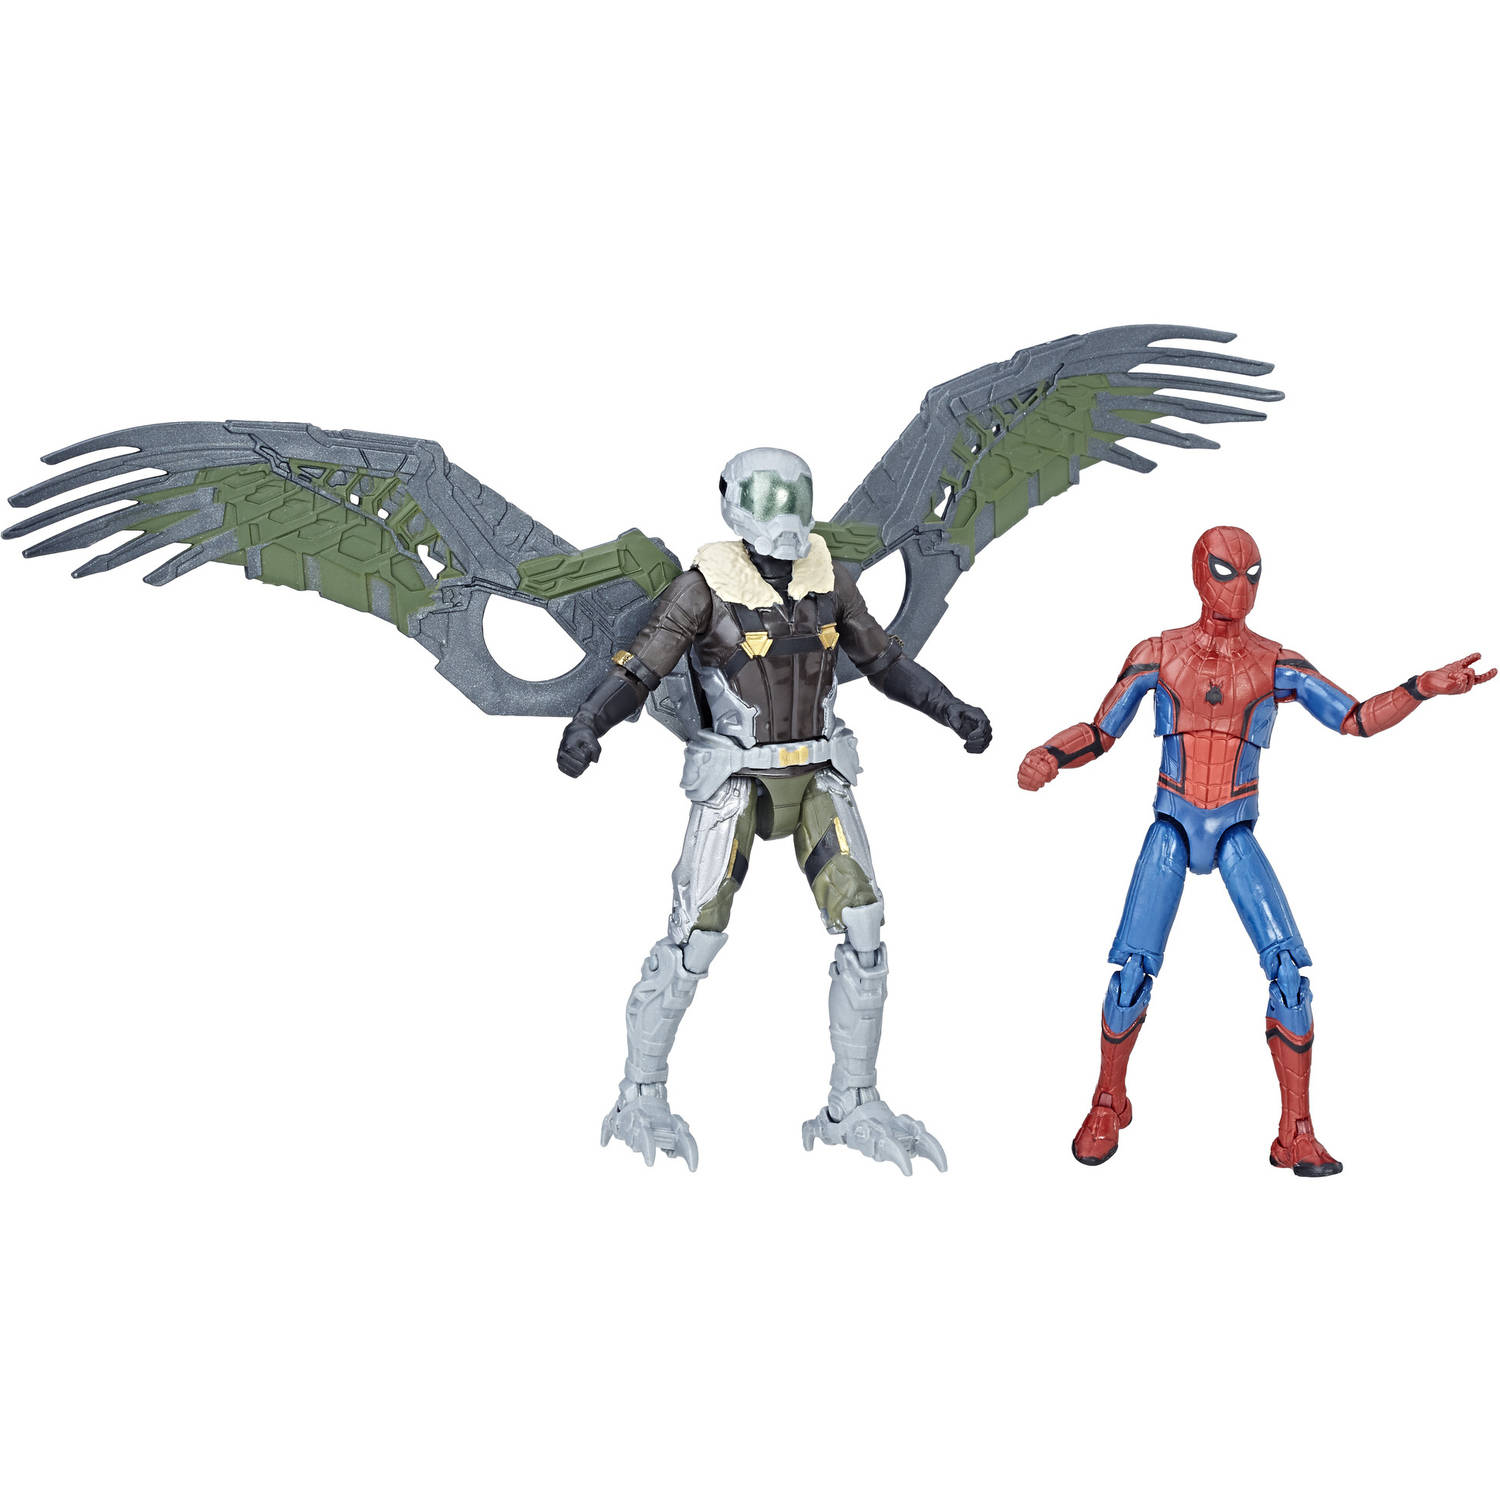 Marvel Legends Spider-Man Spider-Man and Marvel's Vulture, 2-Pack